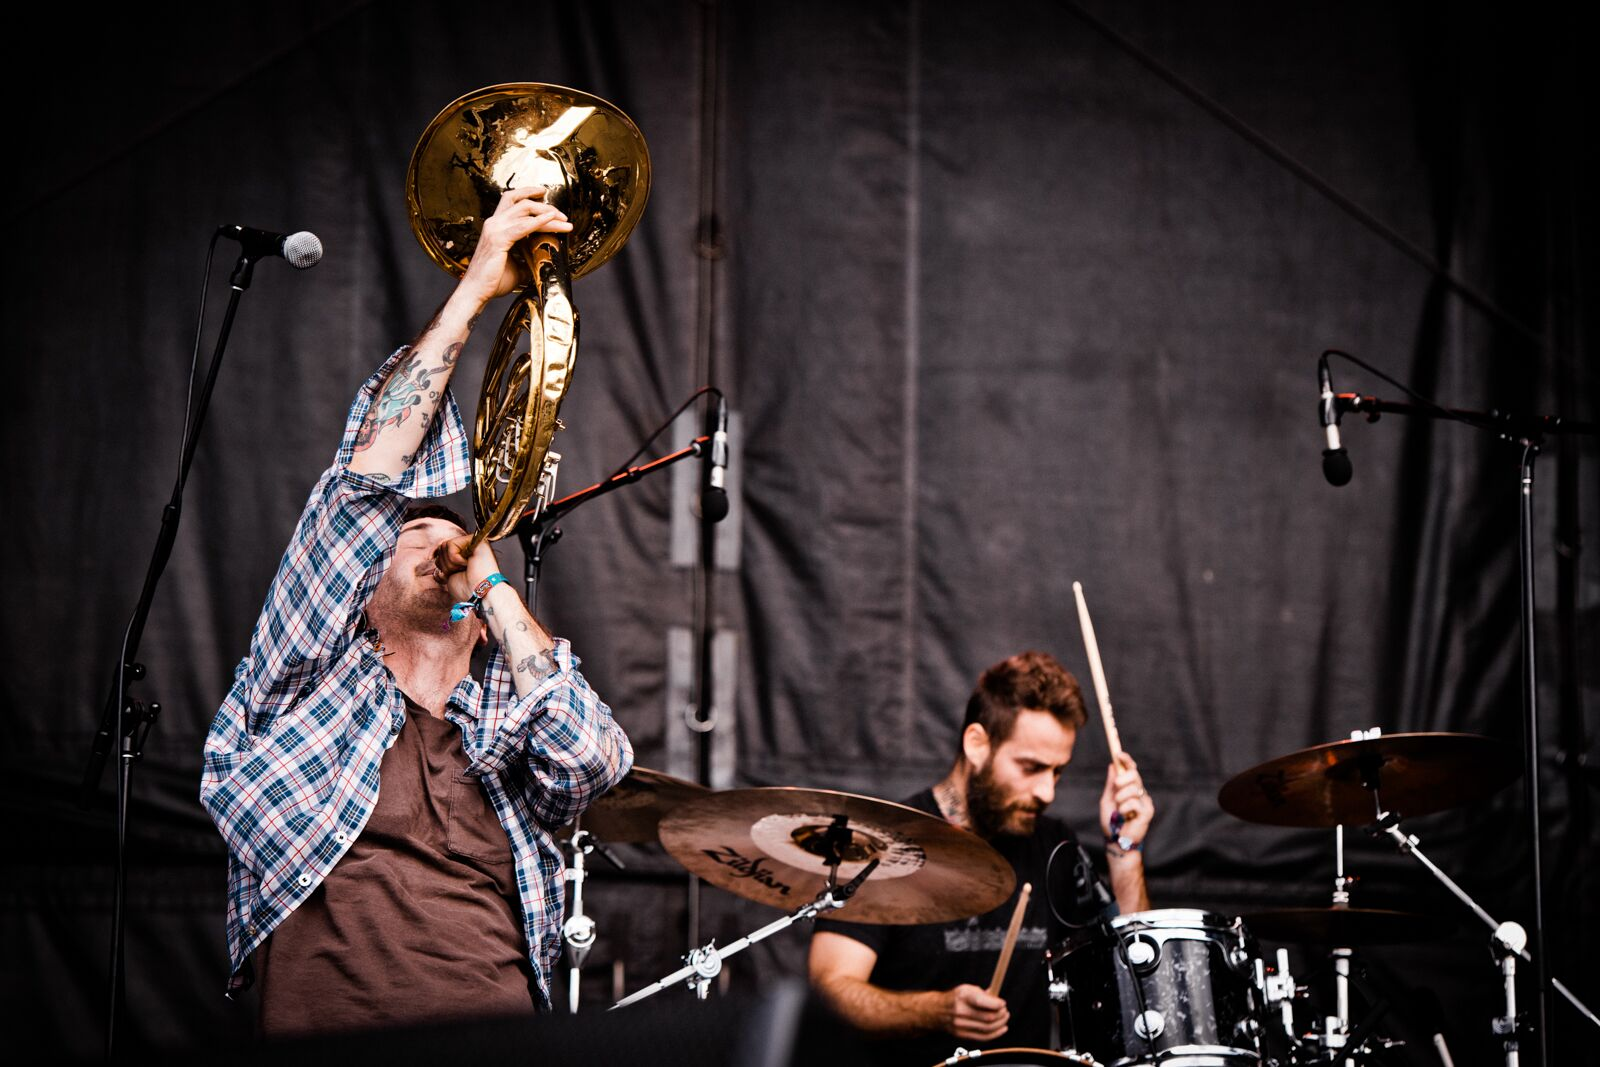 Tim Kinsella blowing into a French horn